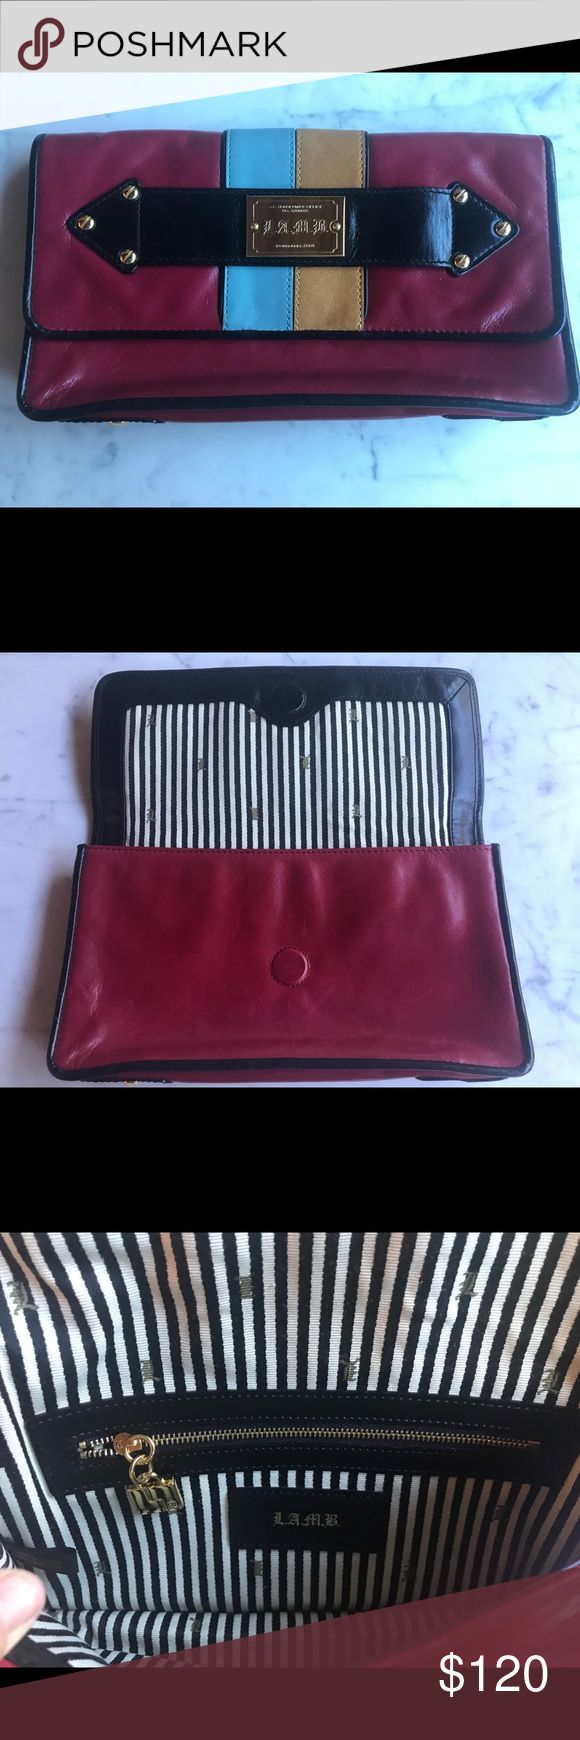 """LAMB hard to find Red Clutch Red clutch with baby blue and beige stripe. Strap in the face to slip your hand in. Gold hardware and interior zipper. Interior fabric is classic black and white stripe with LAMB logo. A couple light scratches (you have to really look for them). No Stains. No wear on edges and corners.  Rarely used.  A perfect size clutch with style and a little edge.  Size:11""""w X 6""""L x 1.5""""D L.A.M.B. Bags Clutches & Wristlets"""